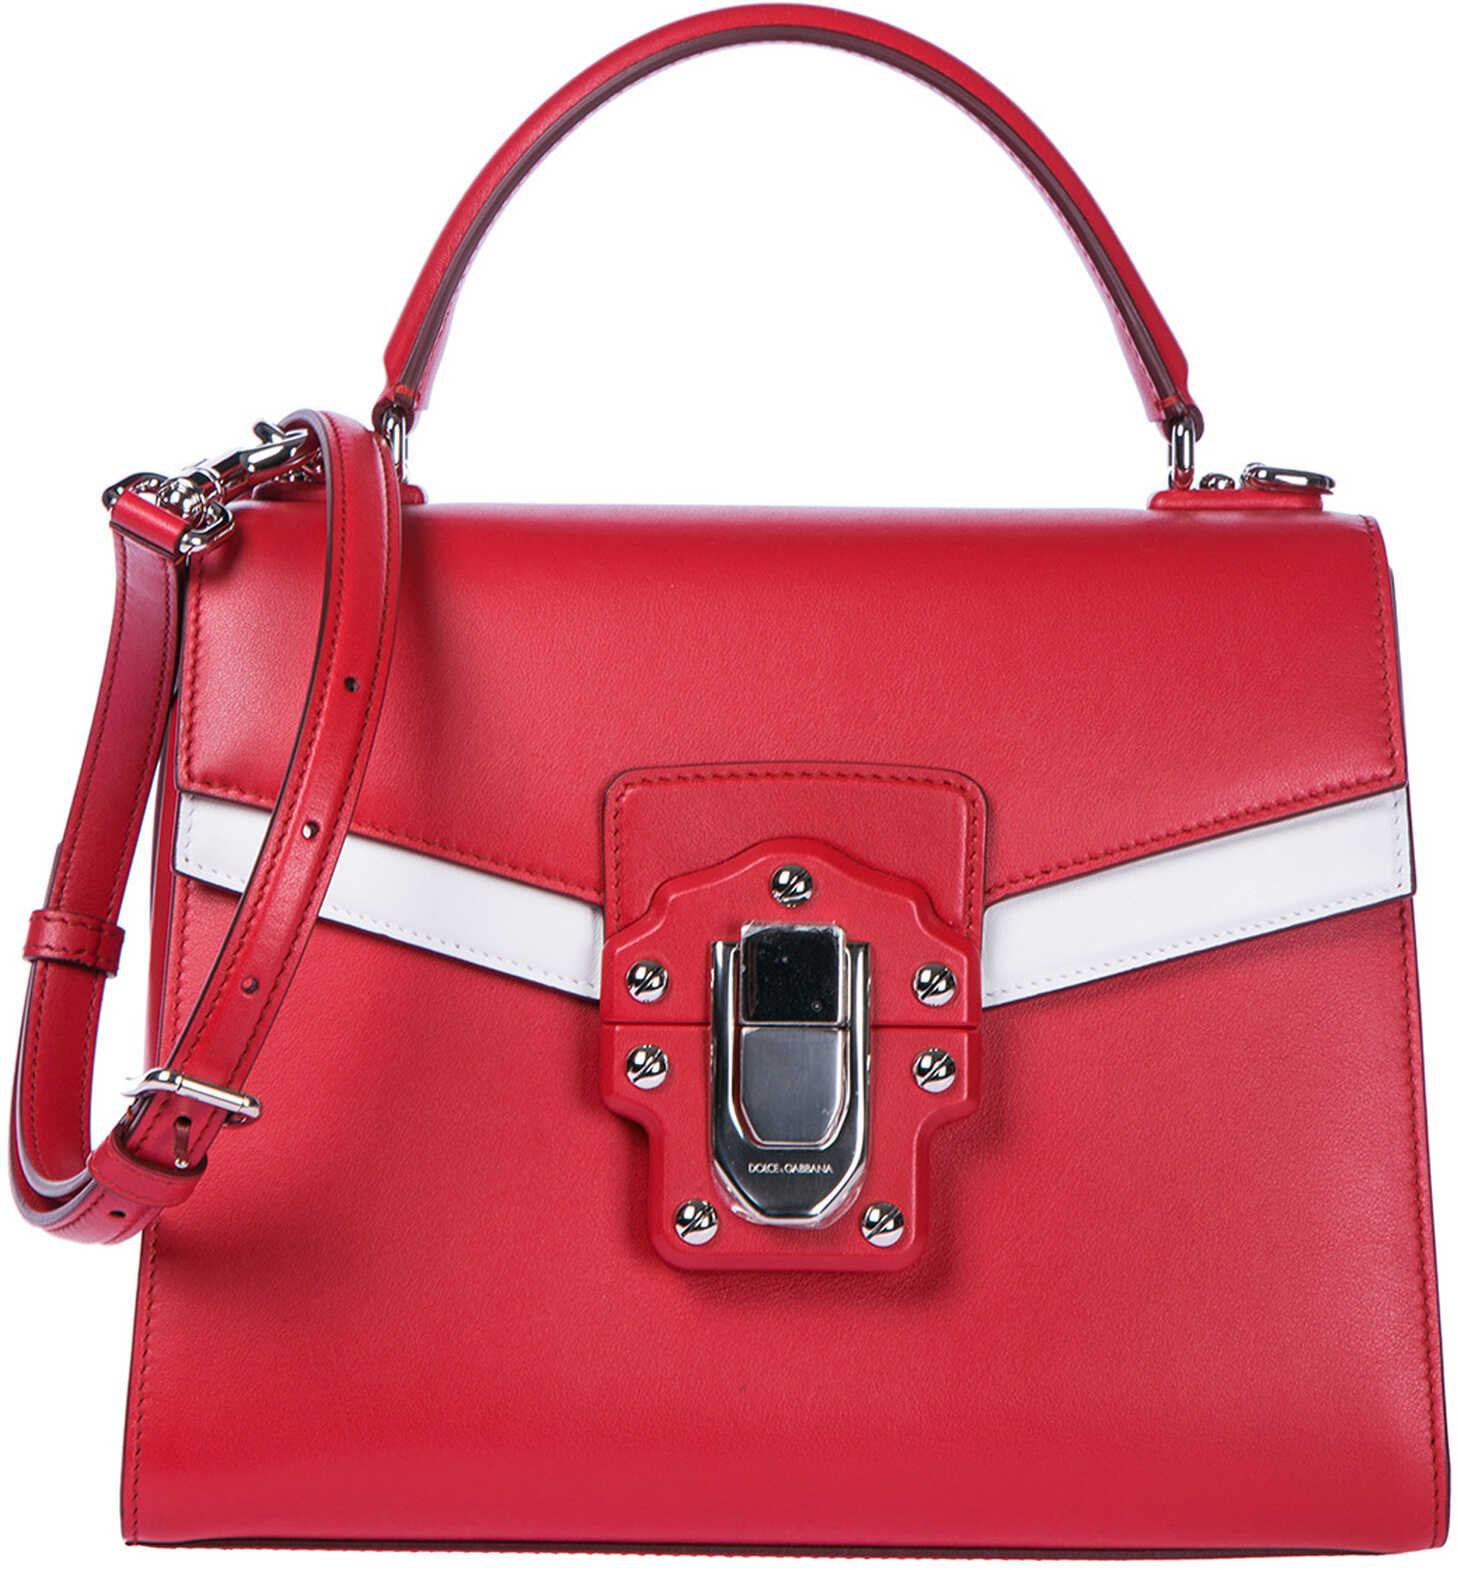 Dolce & Gabbana Bag Purse Red